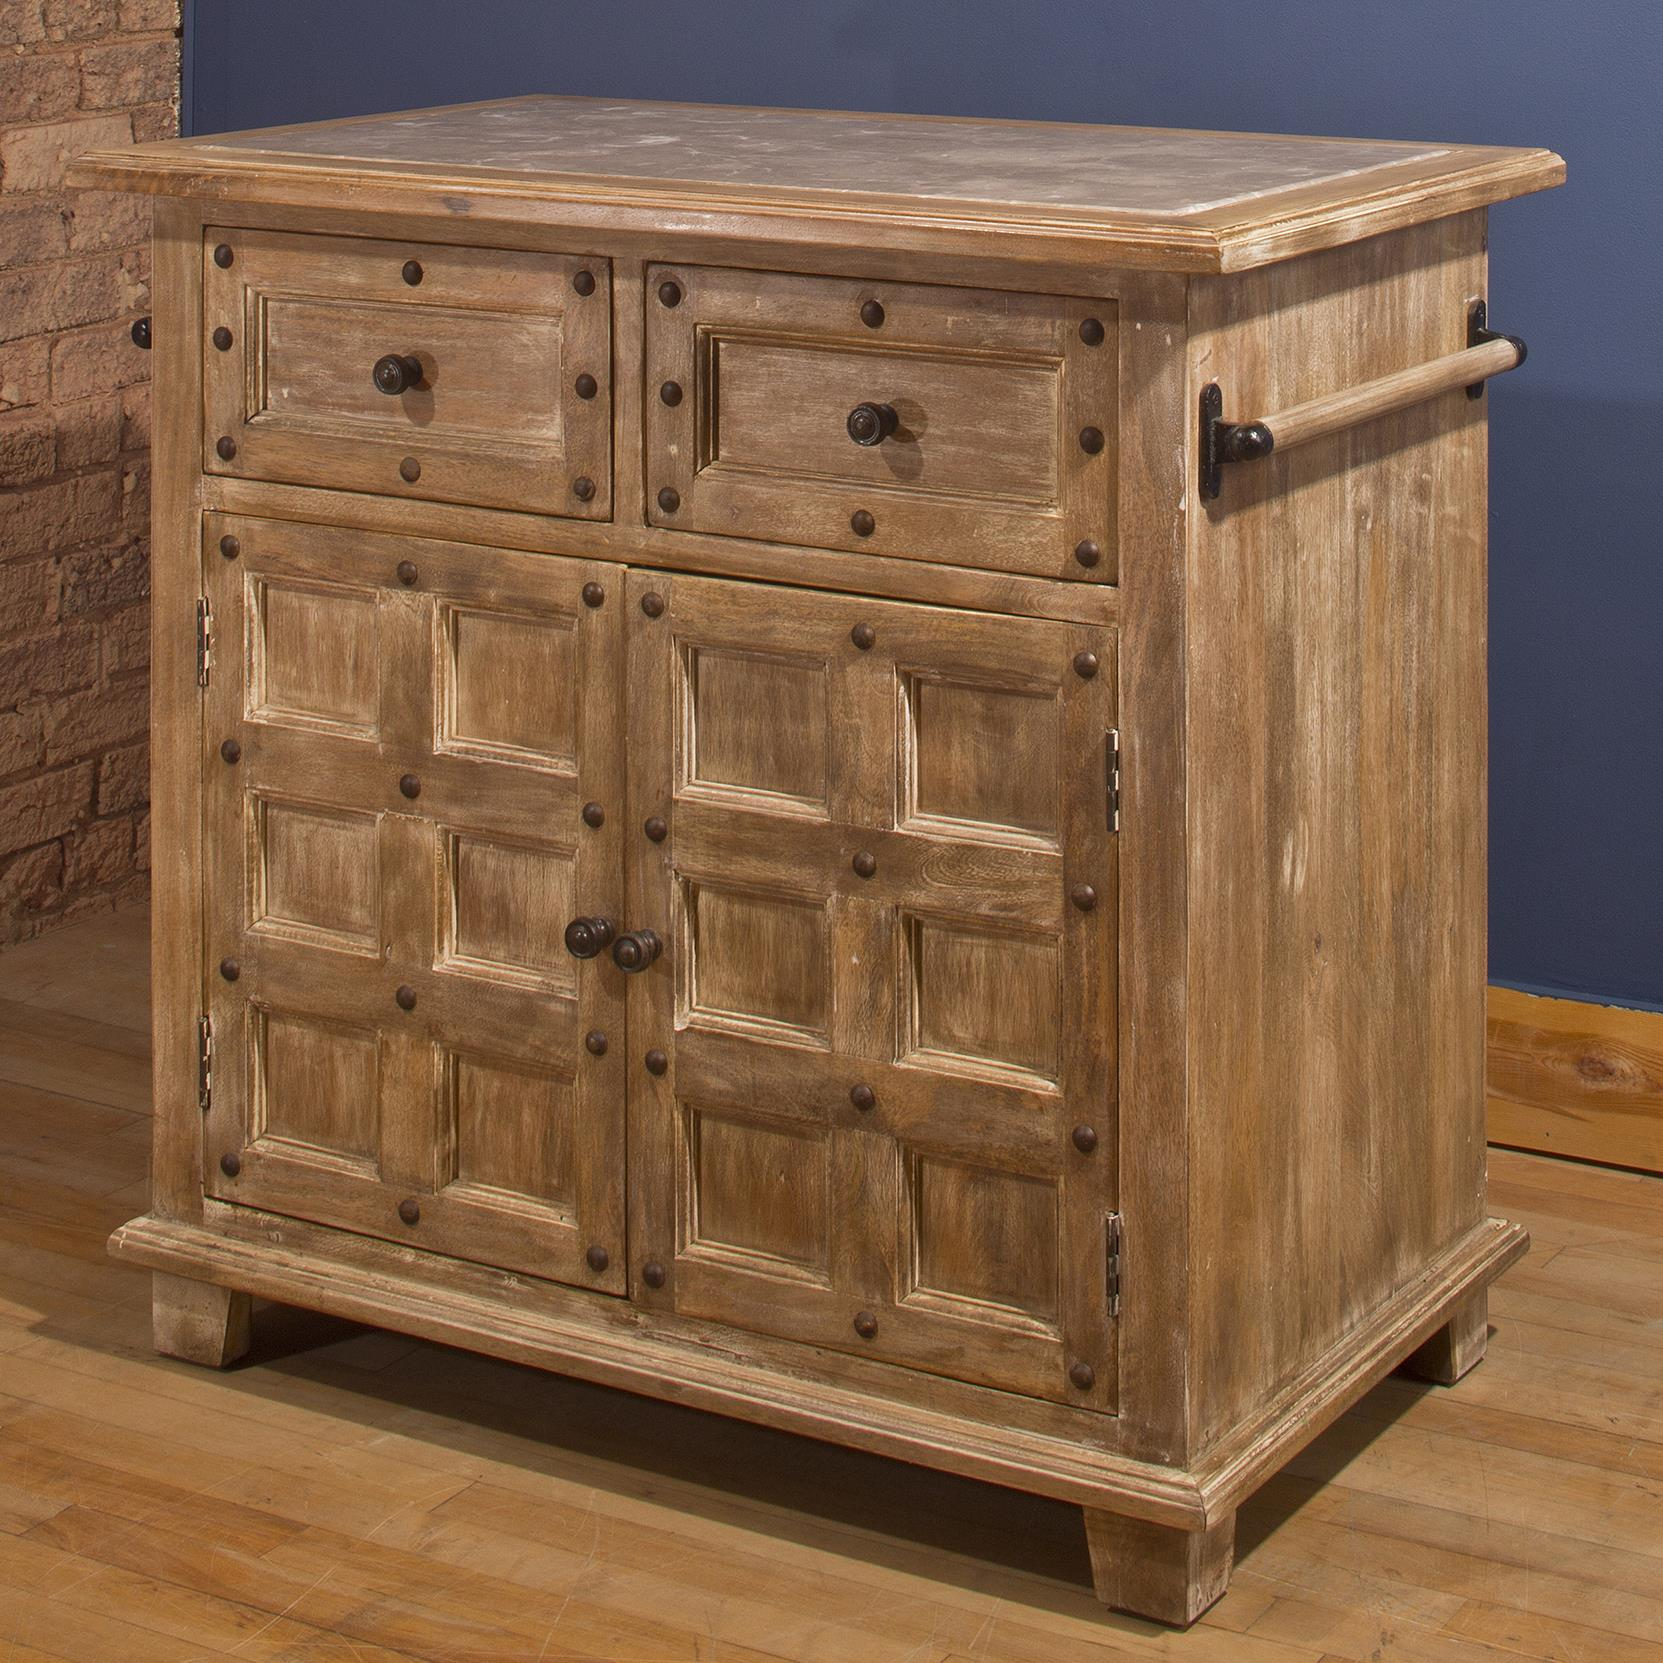 Hillsdale Accents Kitchen Island with Nailhead Trim - Item Number: 5731-895